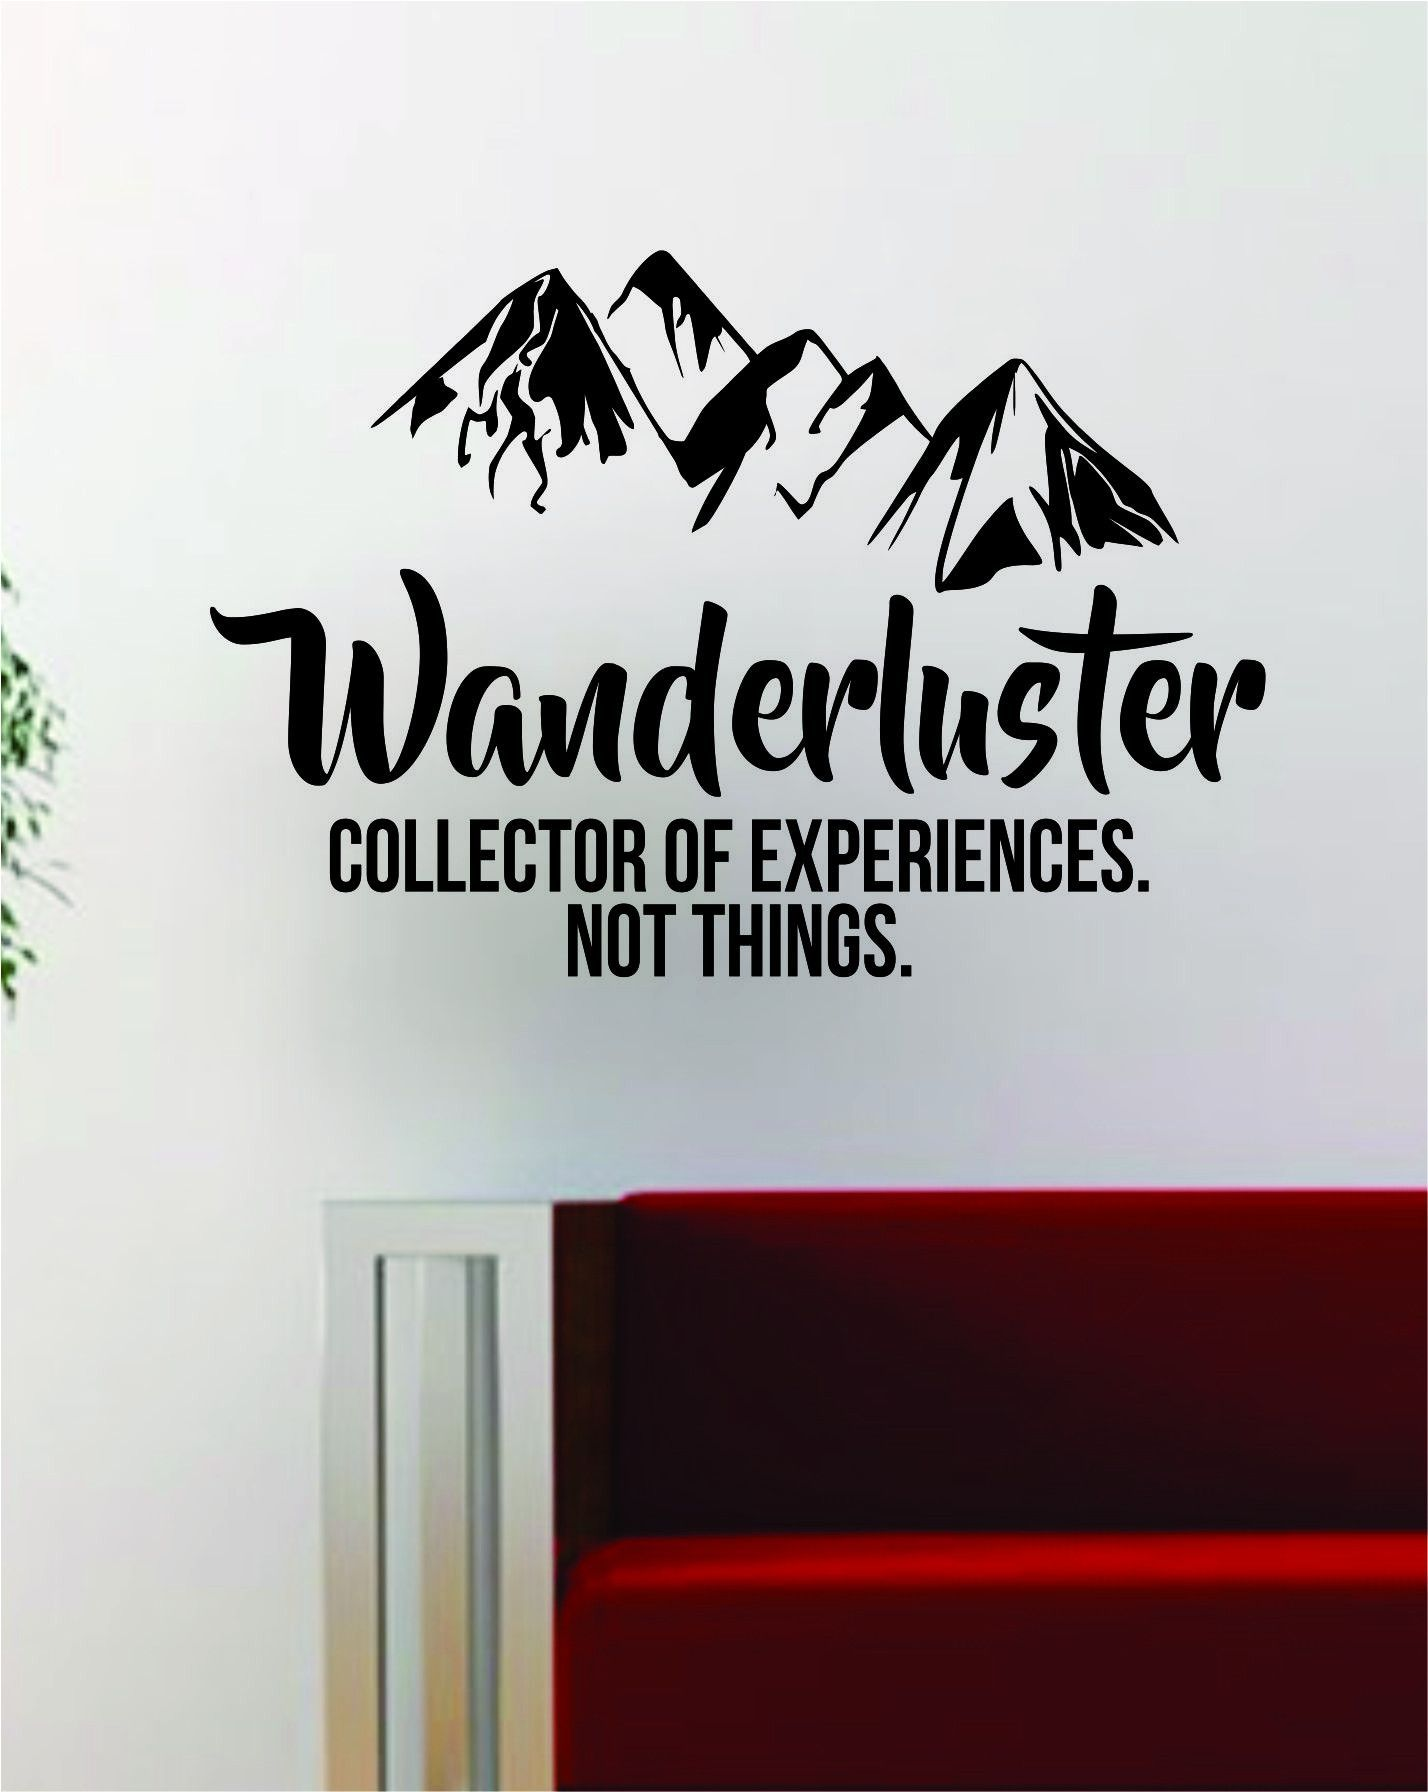 wanderluster quote decal sticker wall vinyl art decor home wanderluster quote decal sticker wall vinyl art decor home wanderlust adventure travel